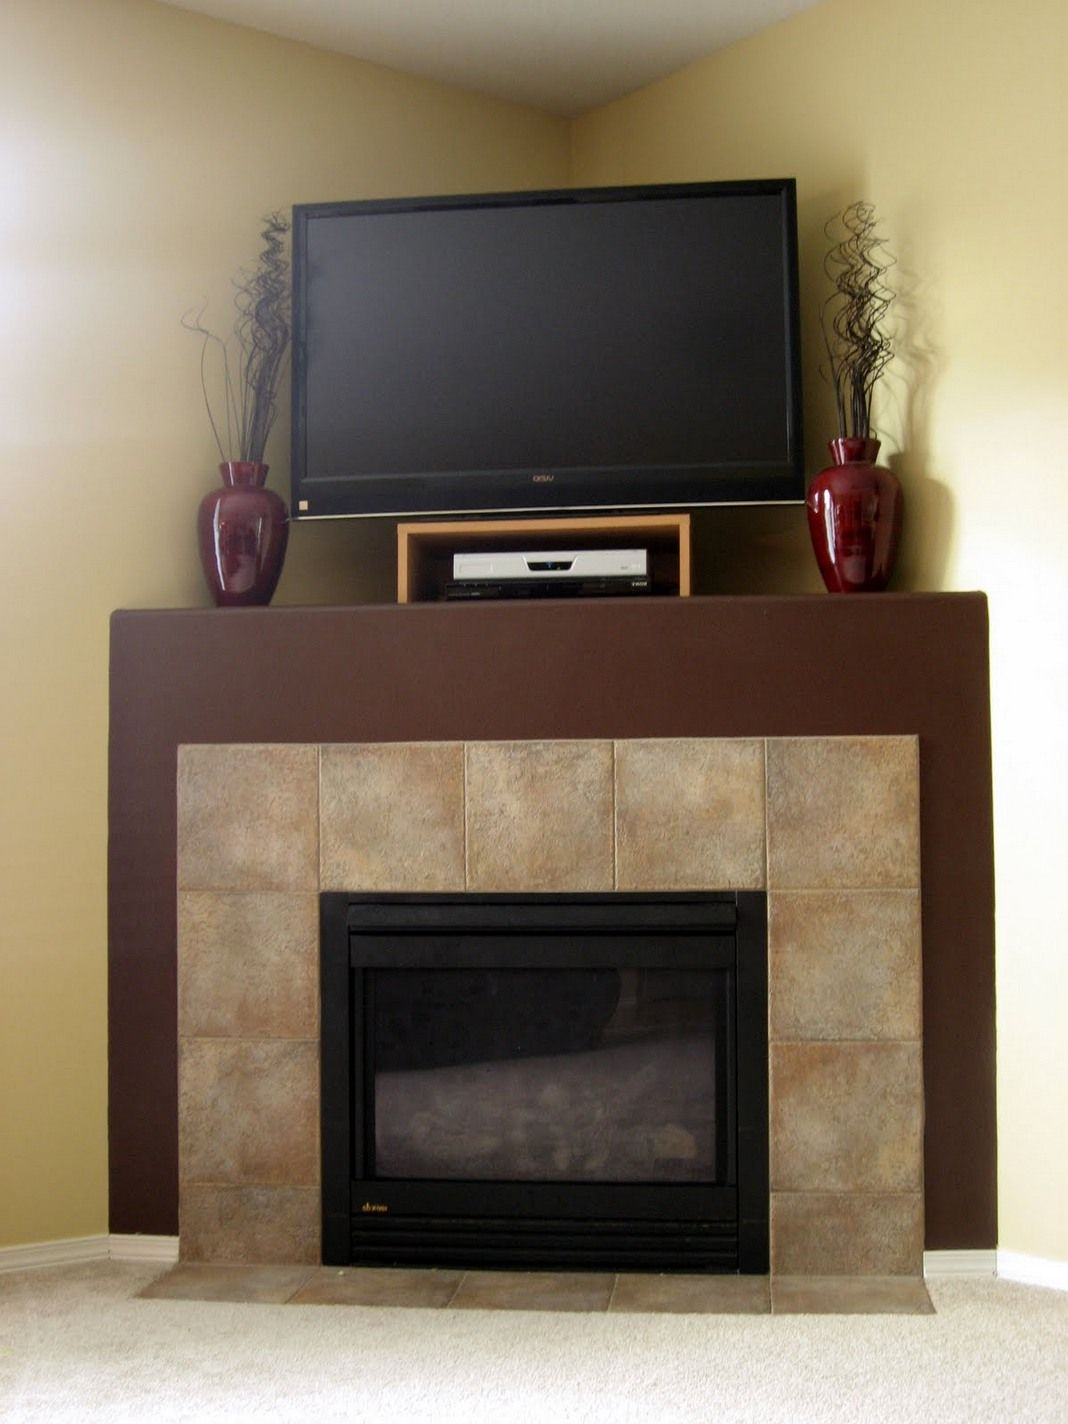 Tv above corner fireplace big slate tile faced | House ideas ...